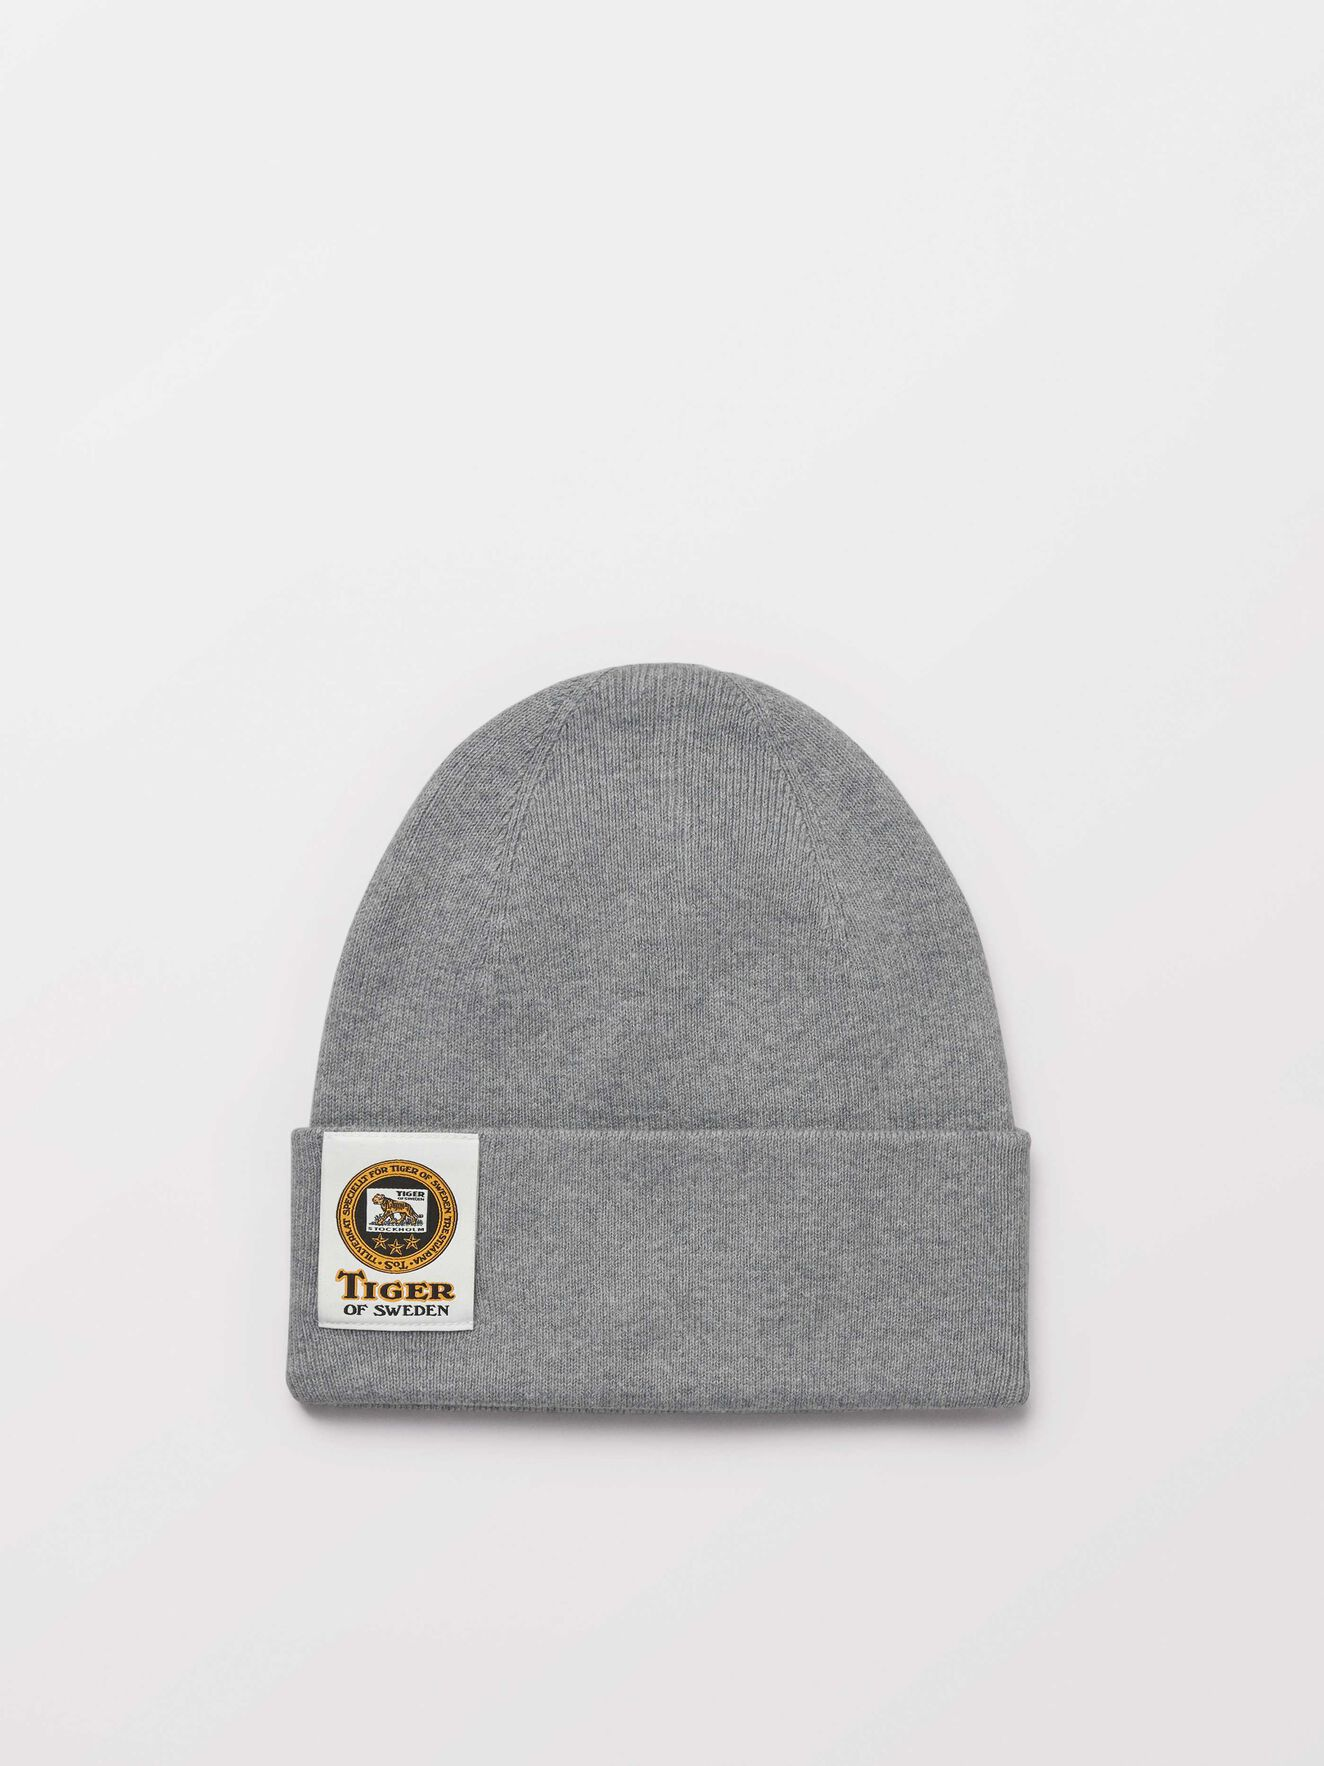 Crail Beanie in Grey melange from Tiger of Sweden